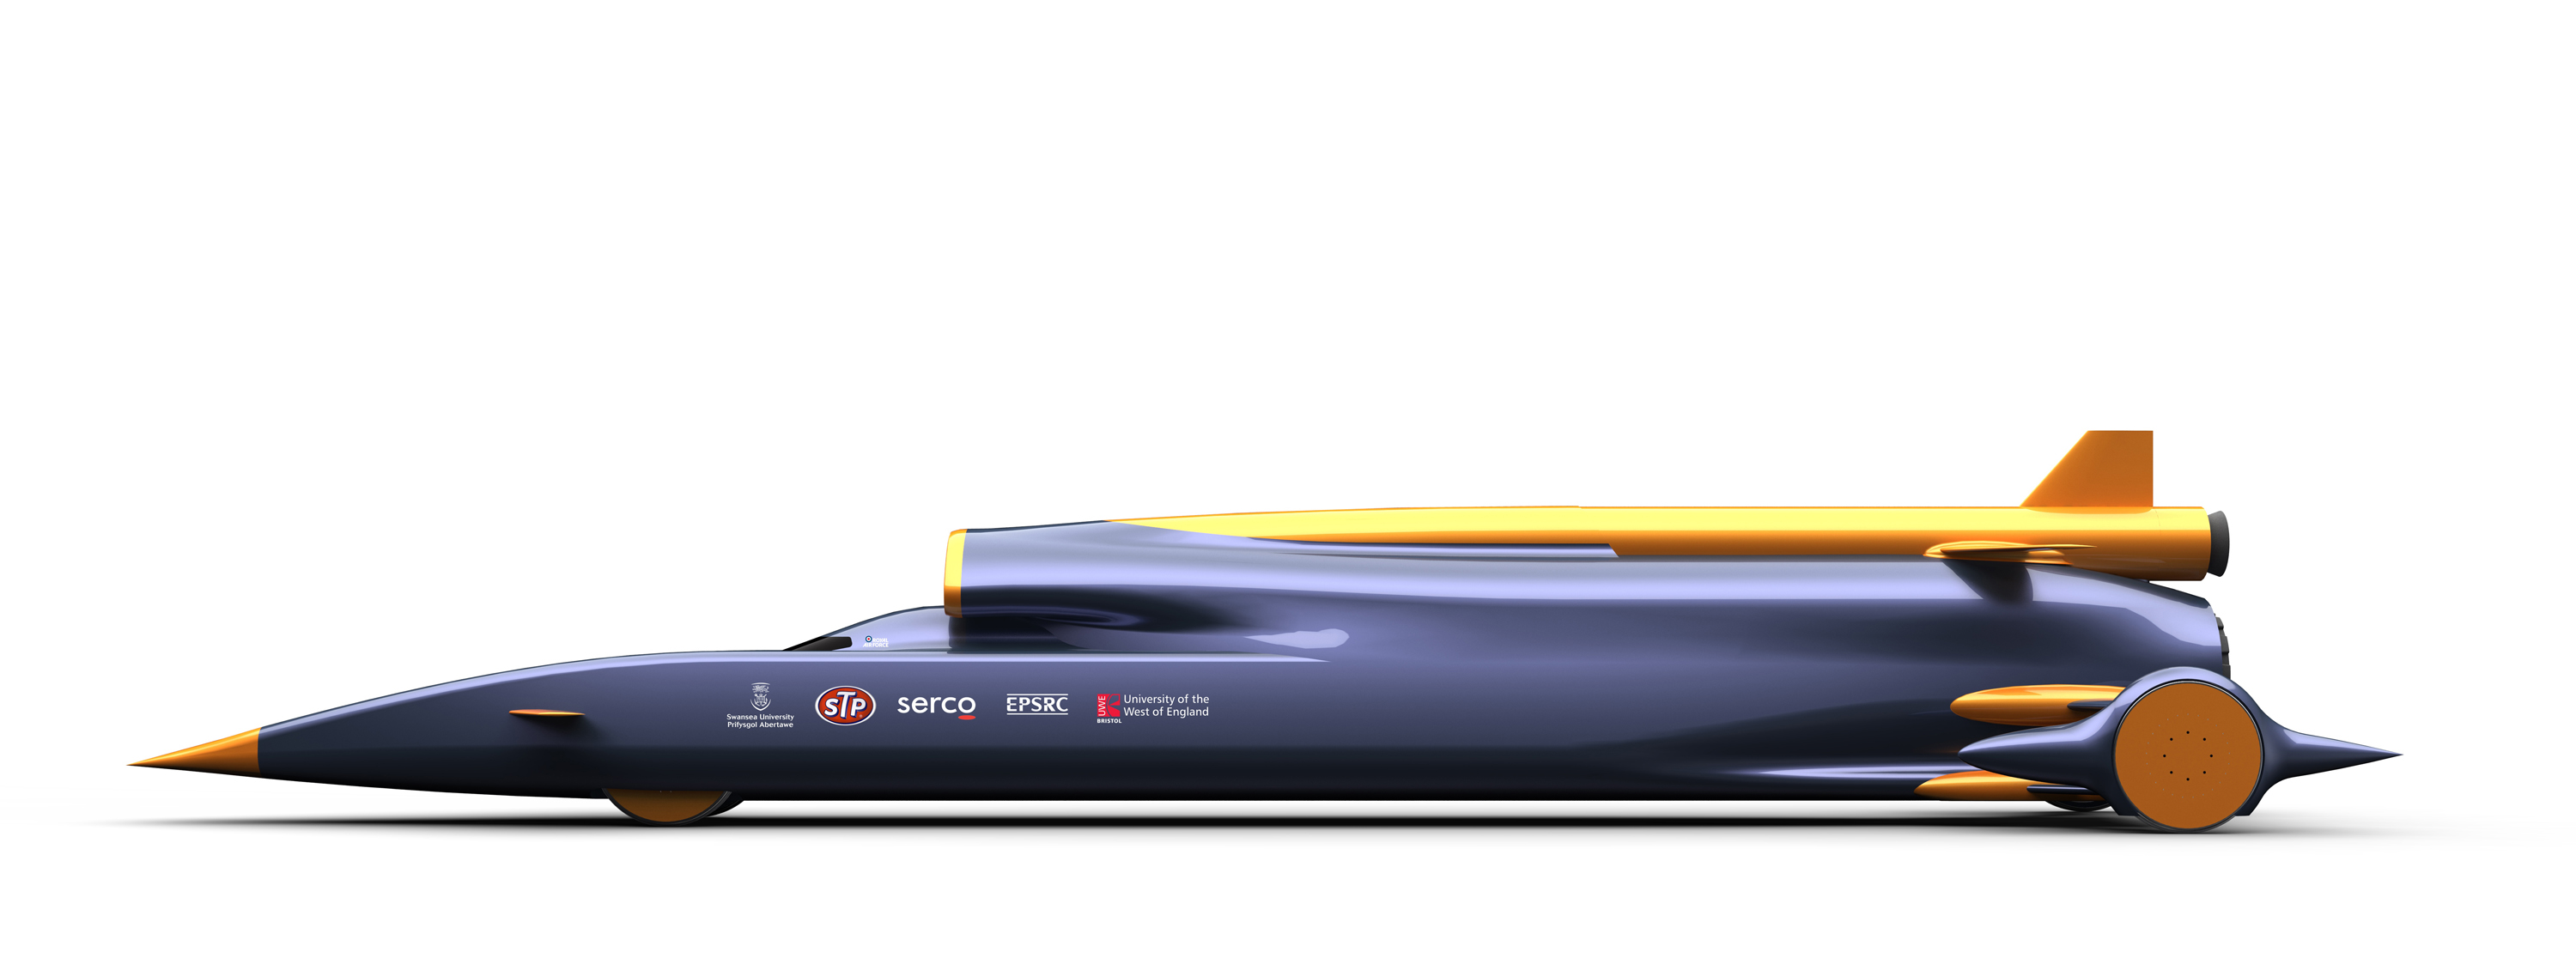 Bloodhound-SSC-pencil-shaped-car-powered-by-jet-engine